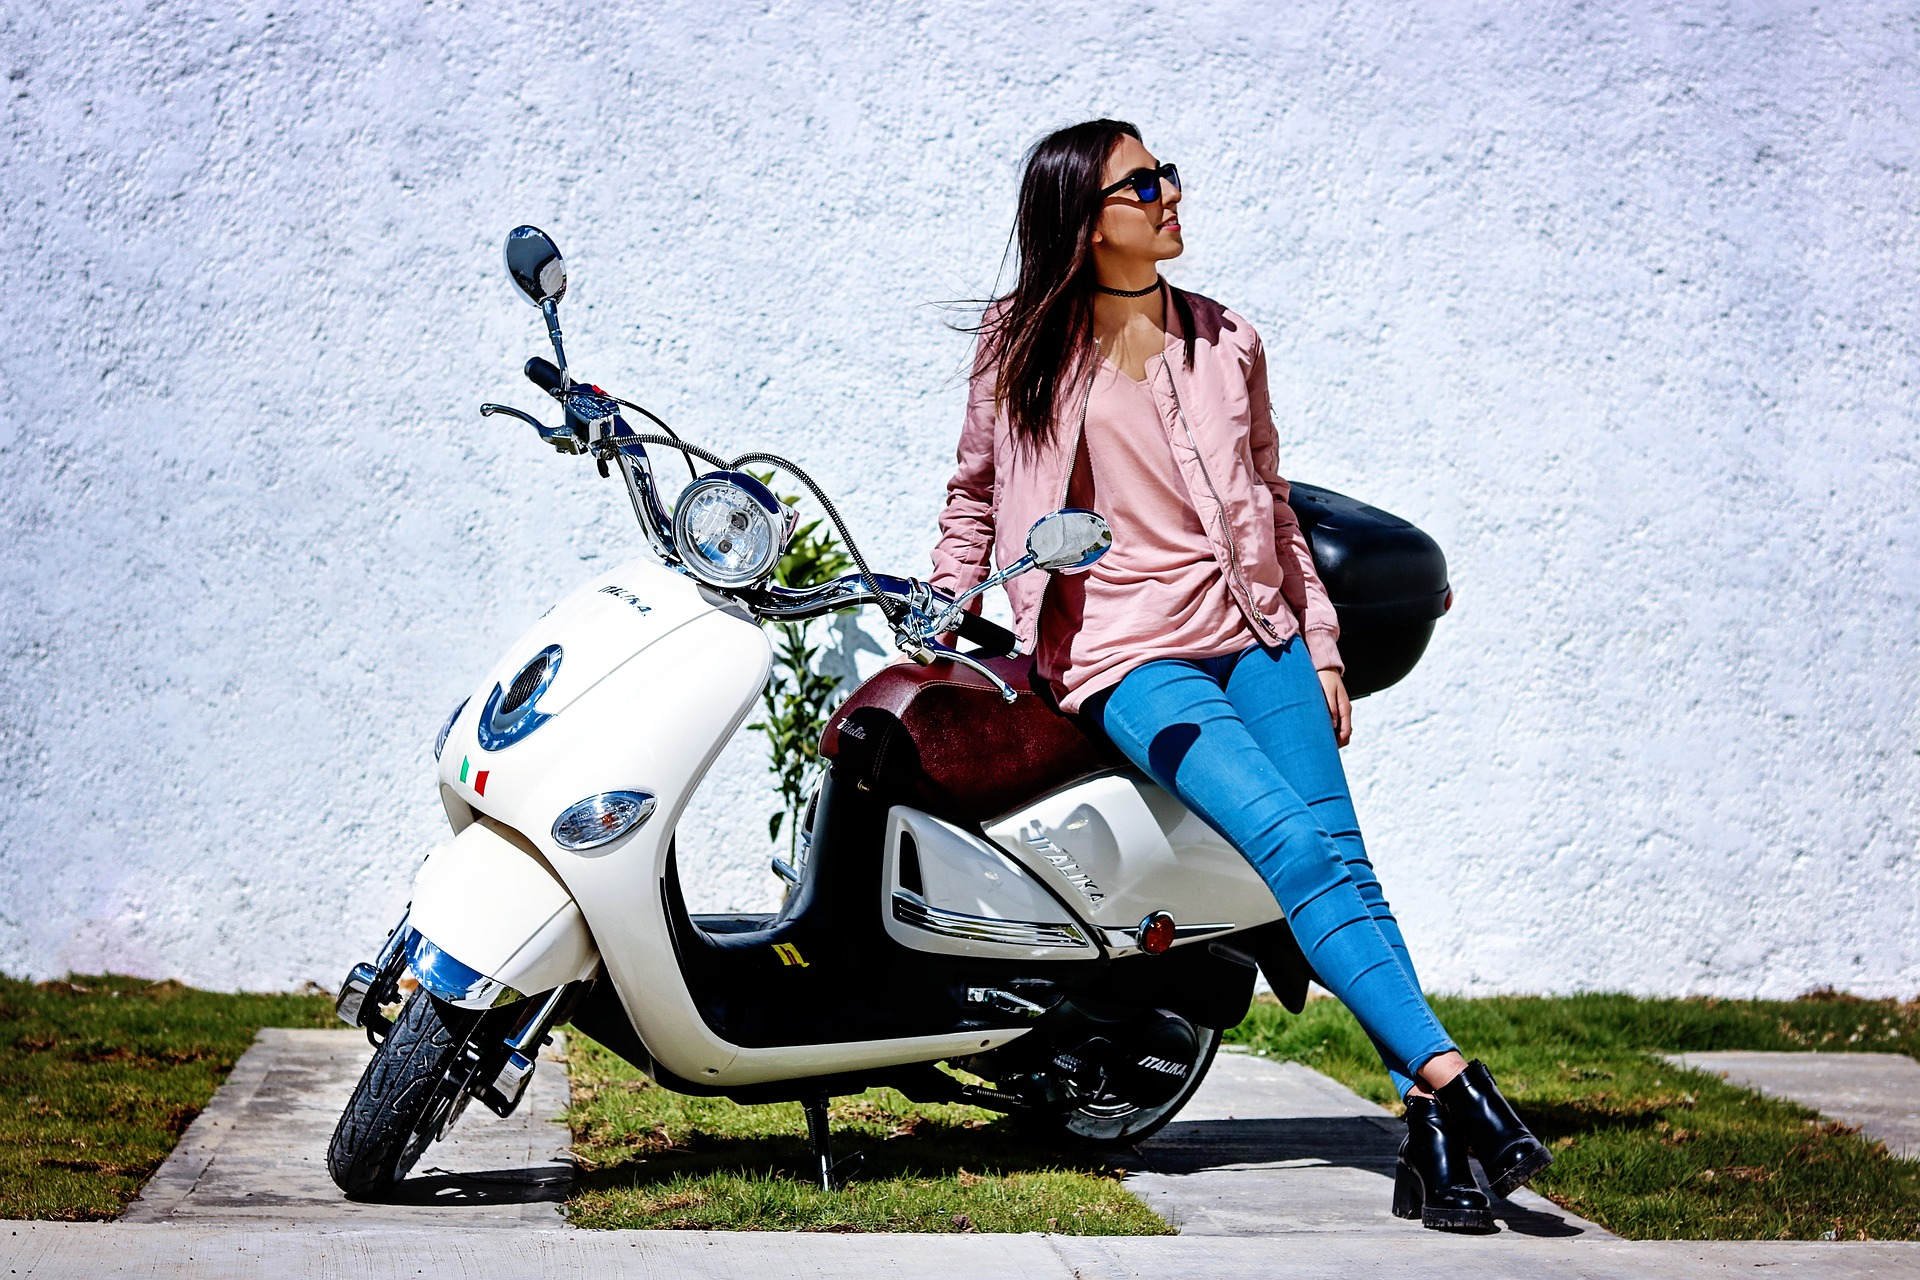 Lady with moped